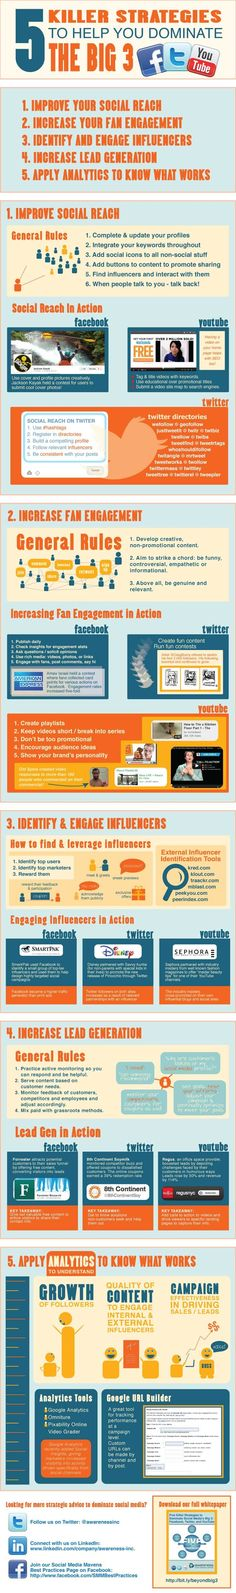 5 Killer Strategies To Help You Dominate #facebook, #twitter & #youtube. #socialmedia #infographic